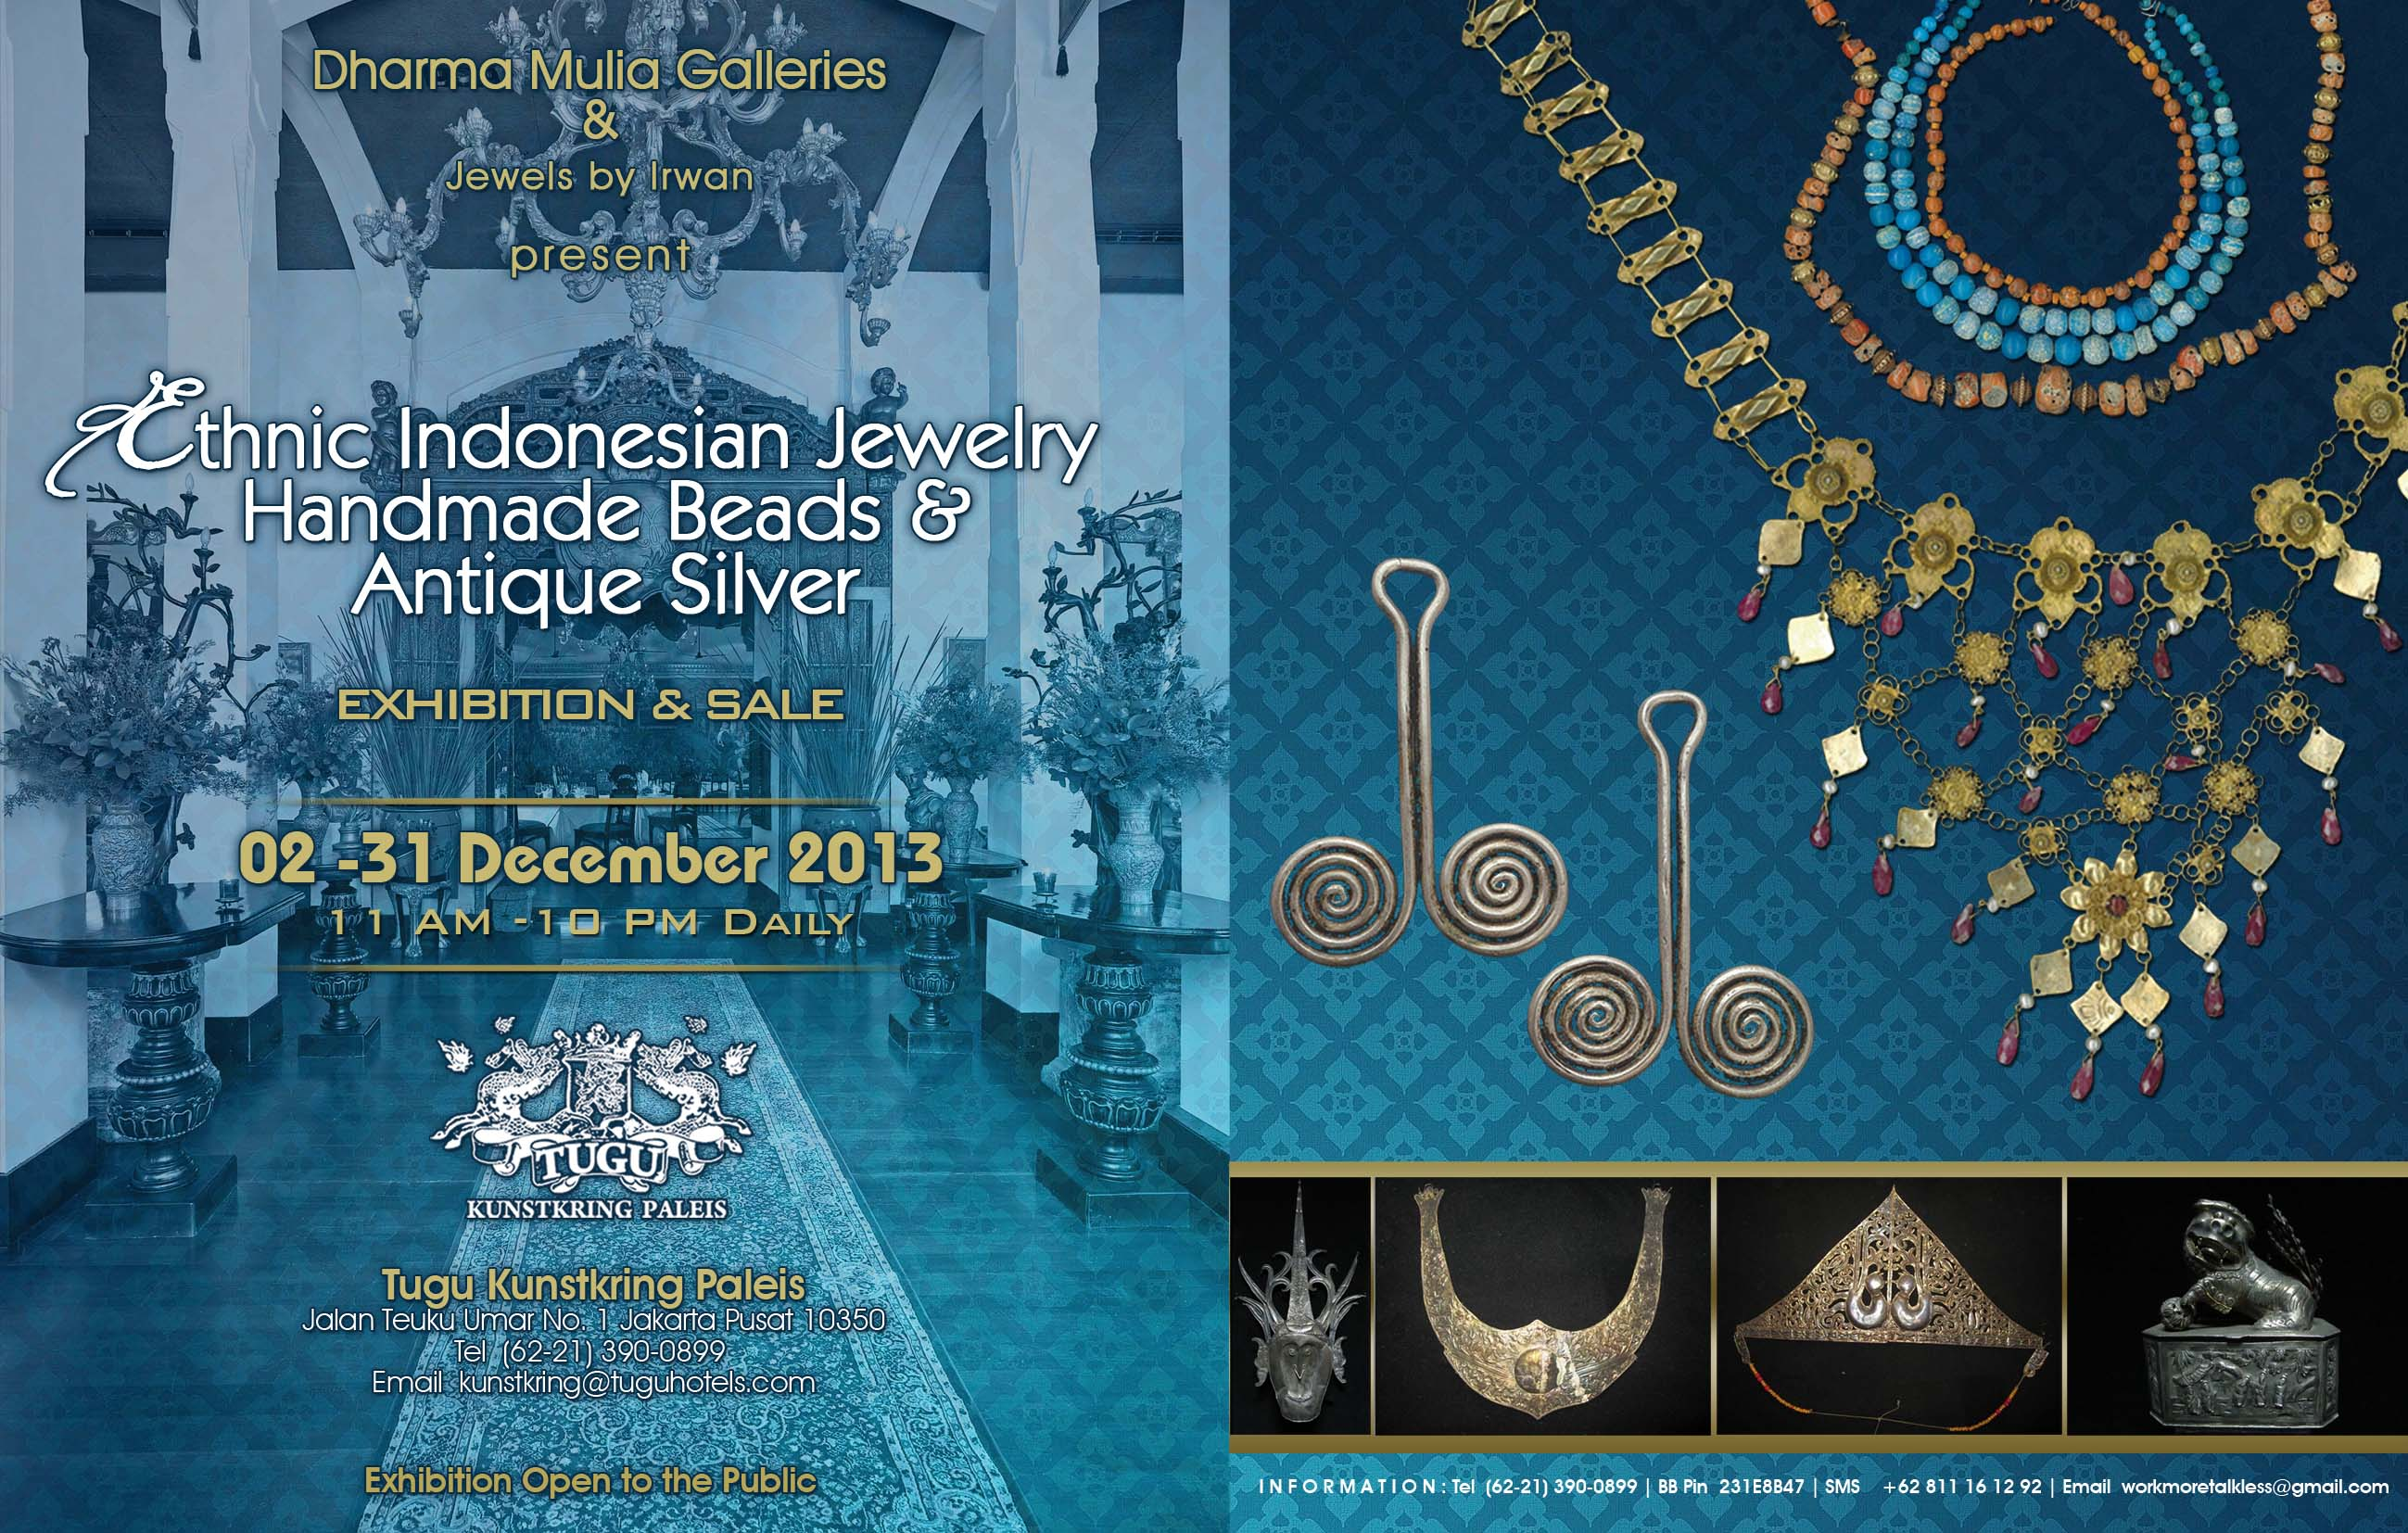 ethnic indonesian jewelry handmade beads and antique silver exhibition & sale 02-31 dec 2013 at tugu kunstkring paleis